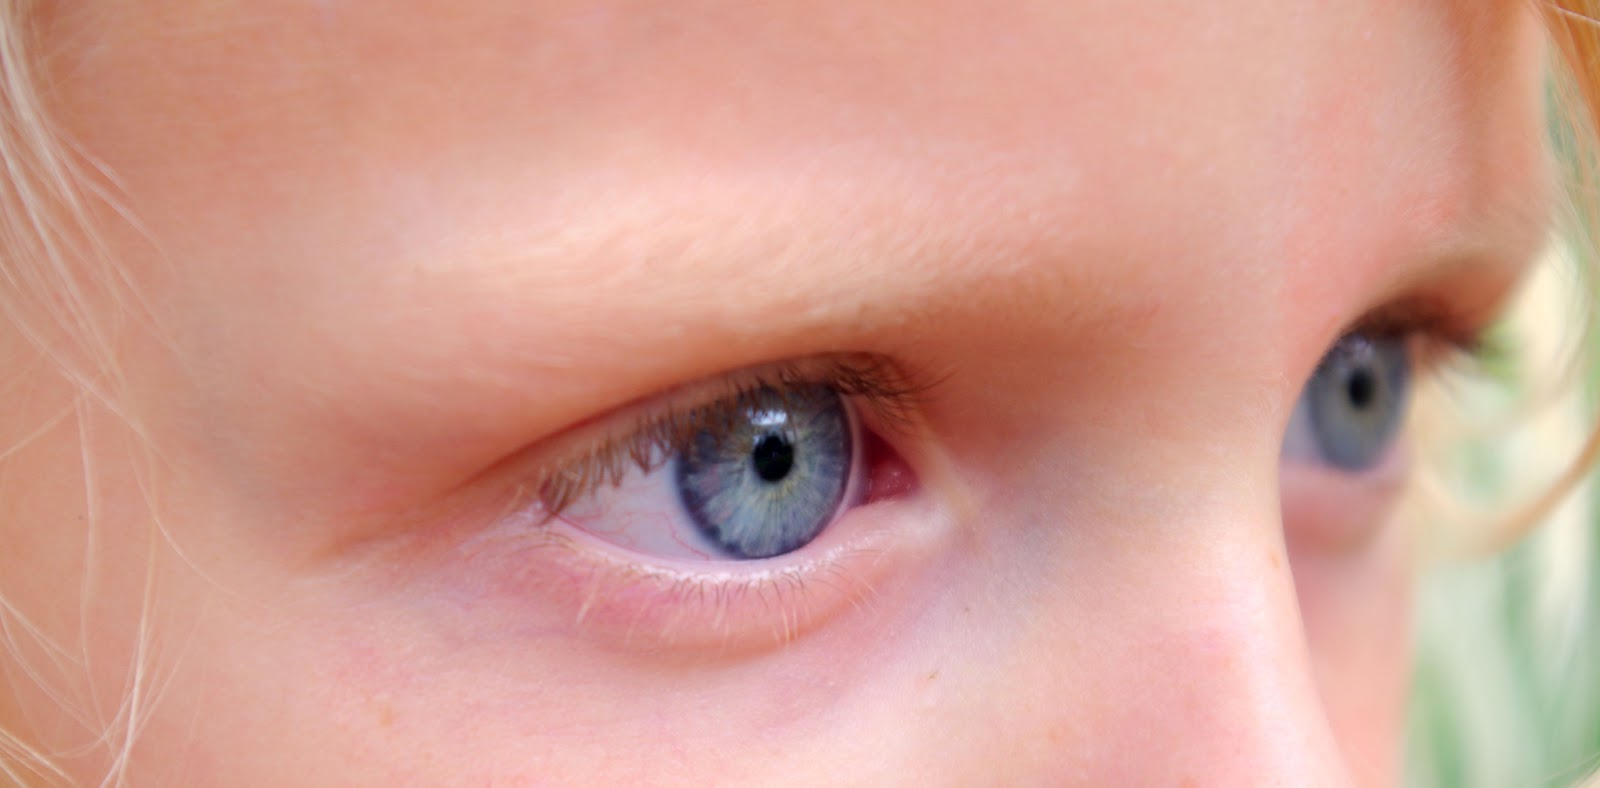 Shades Of Blue Eyes Chart Different shades of blue eyes